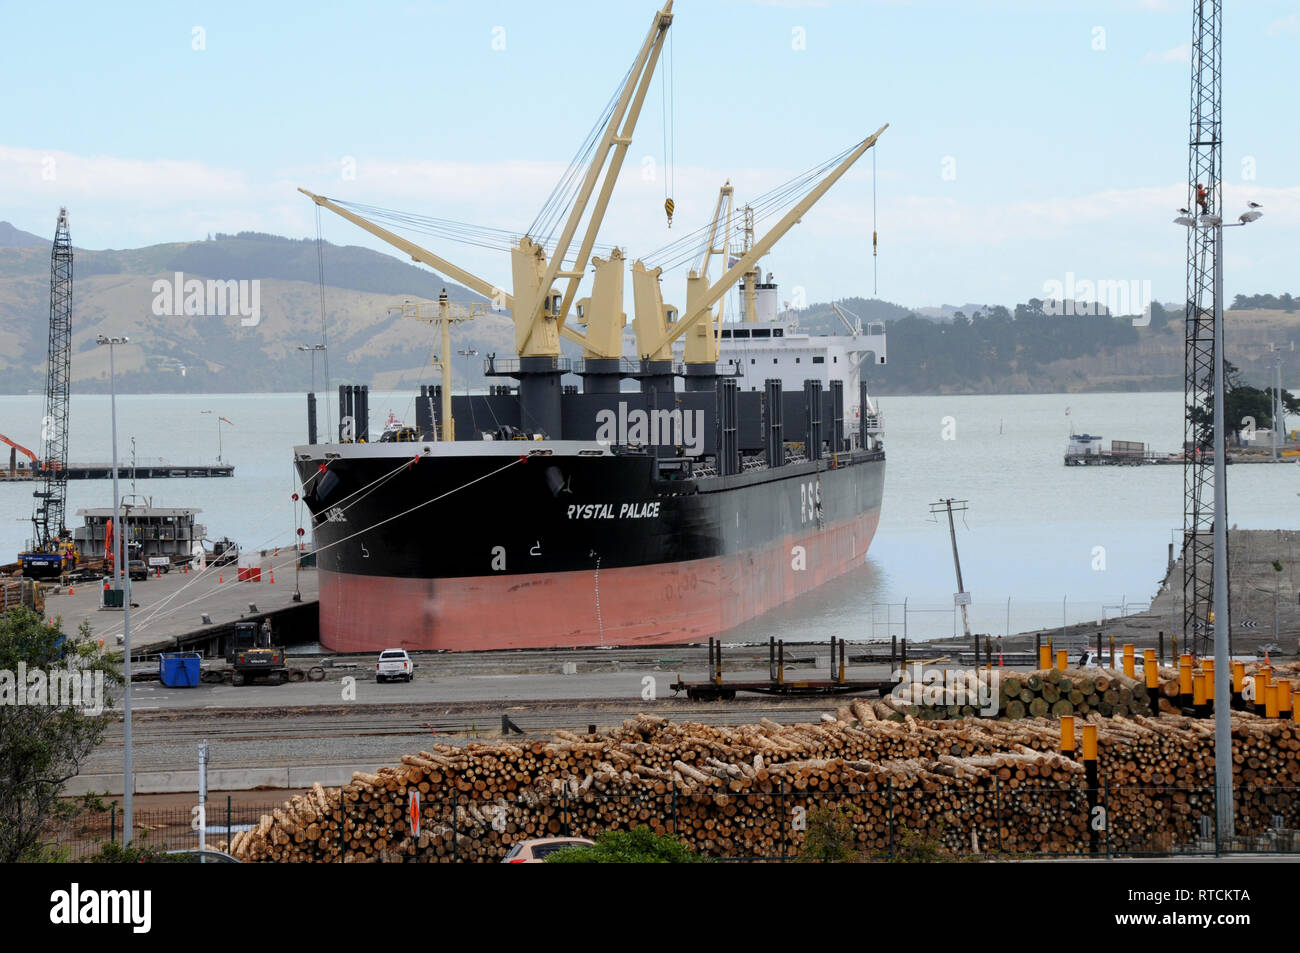 A cargo ship awaiting its load of timber at the Log Yard in Lyttleton Port of Christchurch New Zealand. - Stock Image